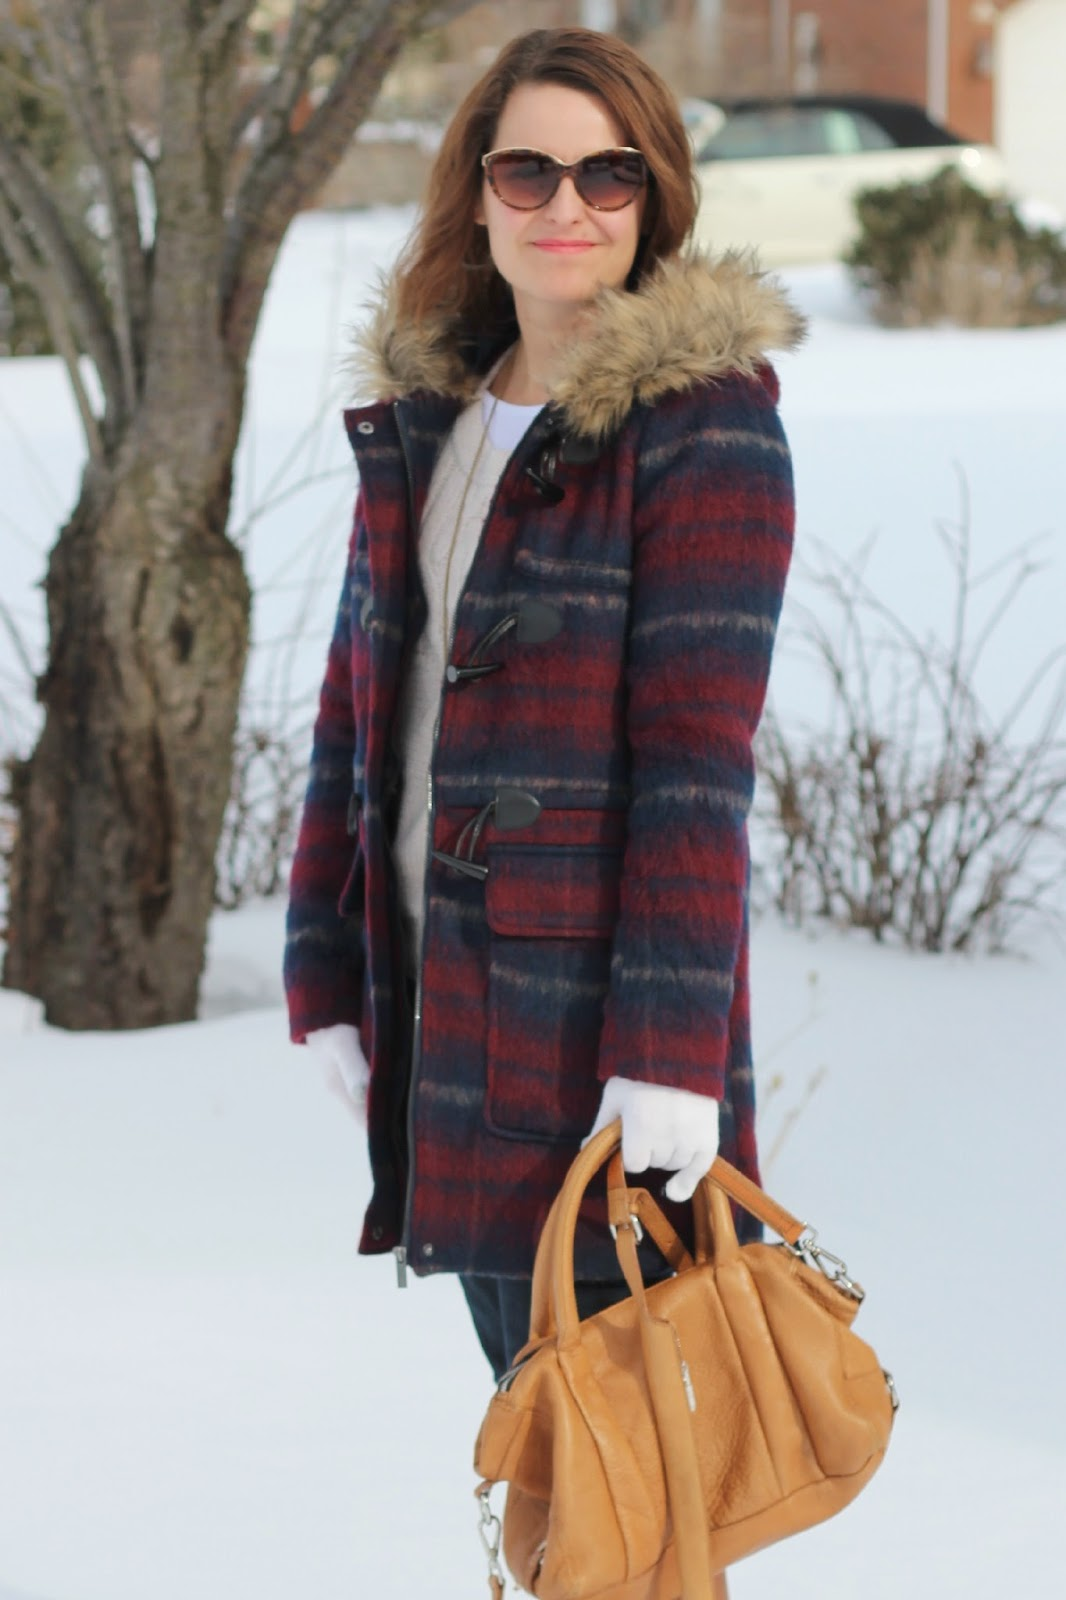 Plaid wool coat, cognac boots, cognac bag, winter look, winter outfit, winter style, snow style